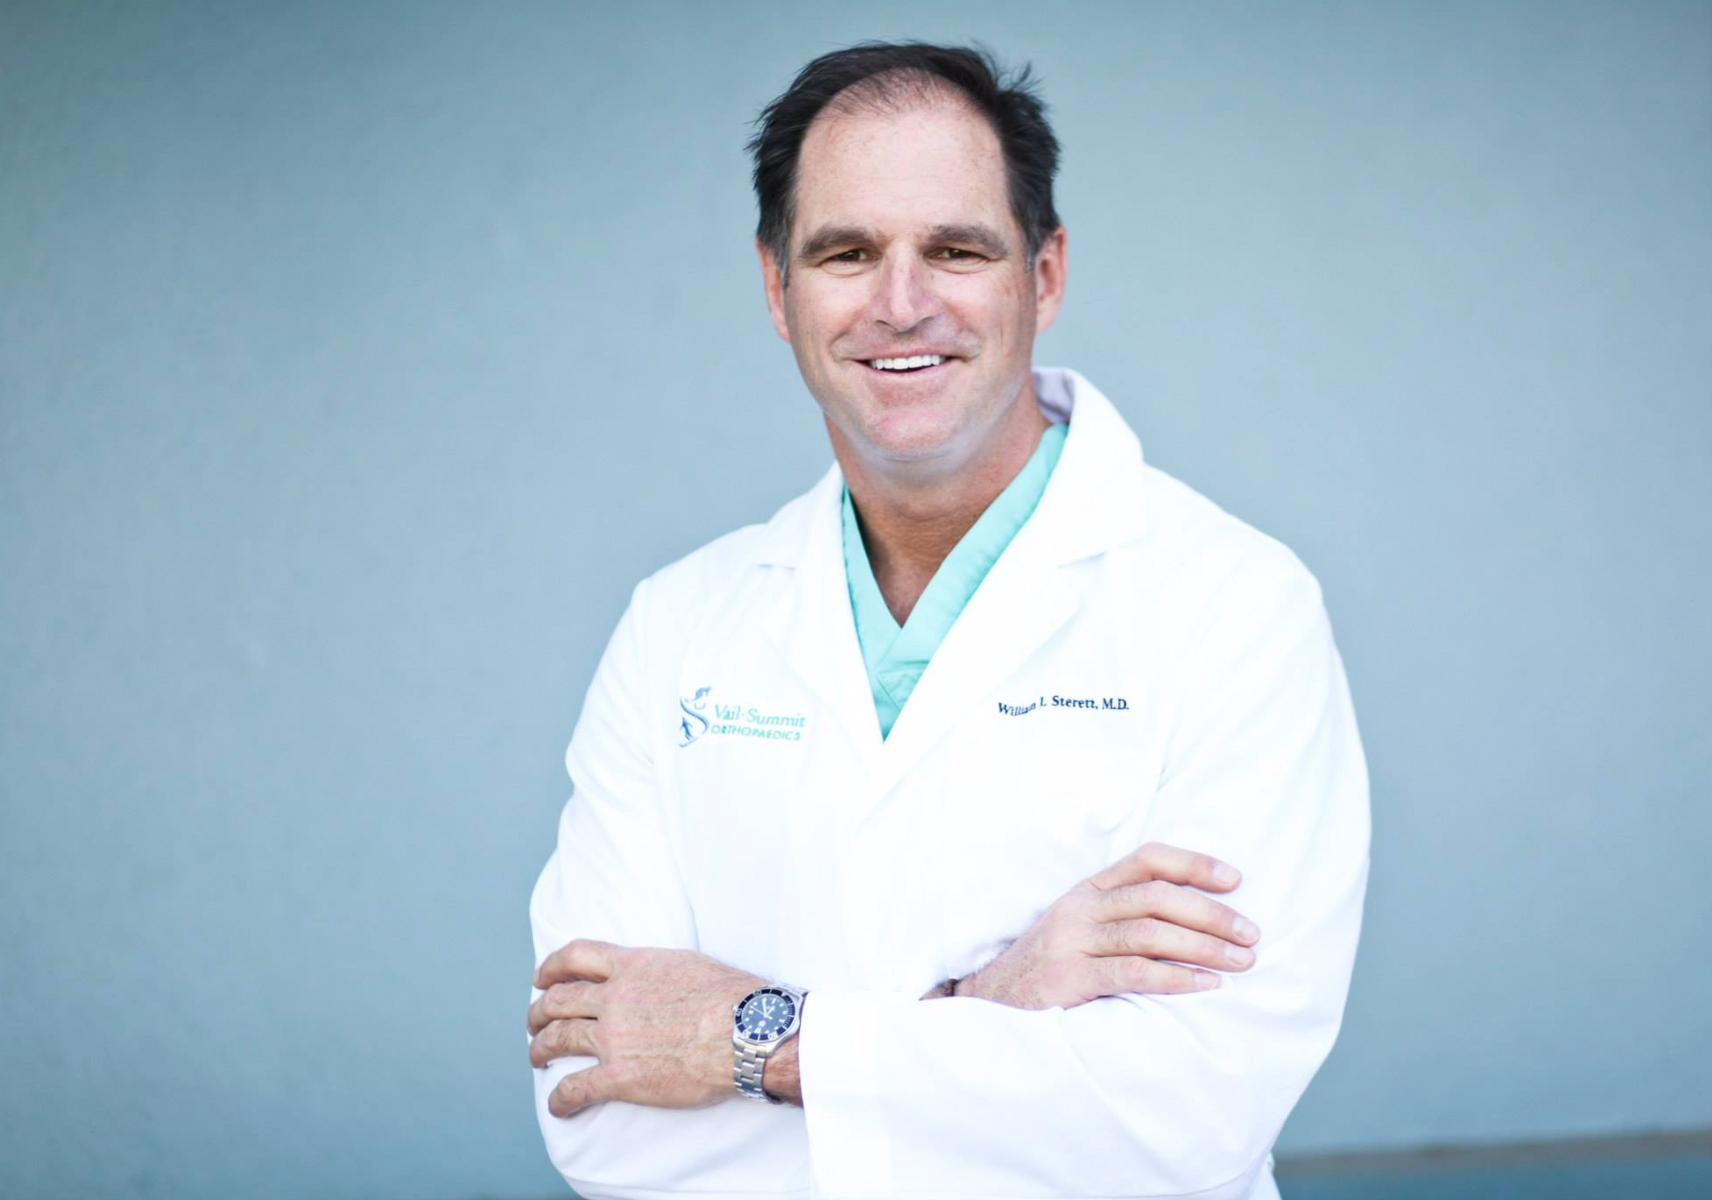 More about Dr. Sterett at www.drsterett.com